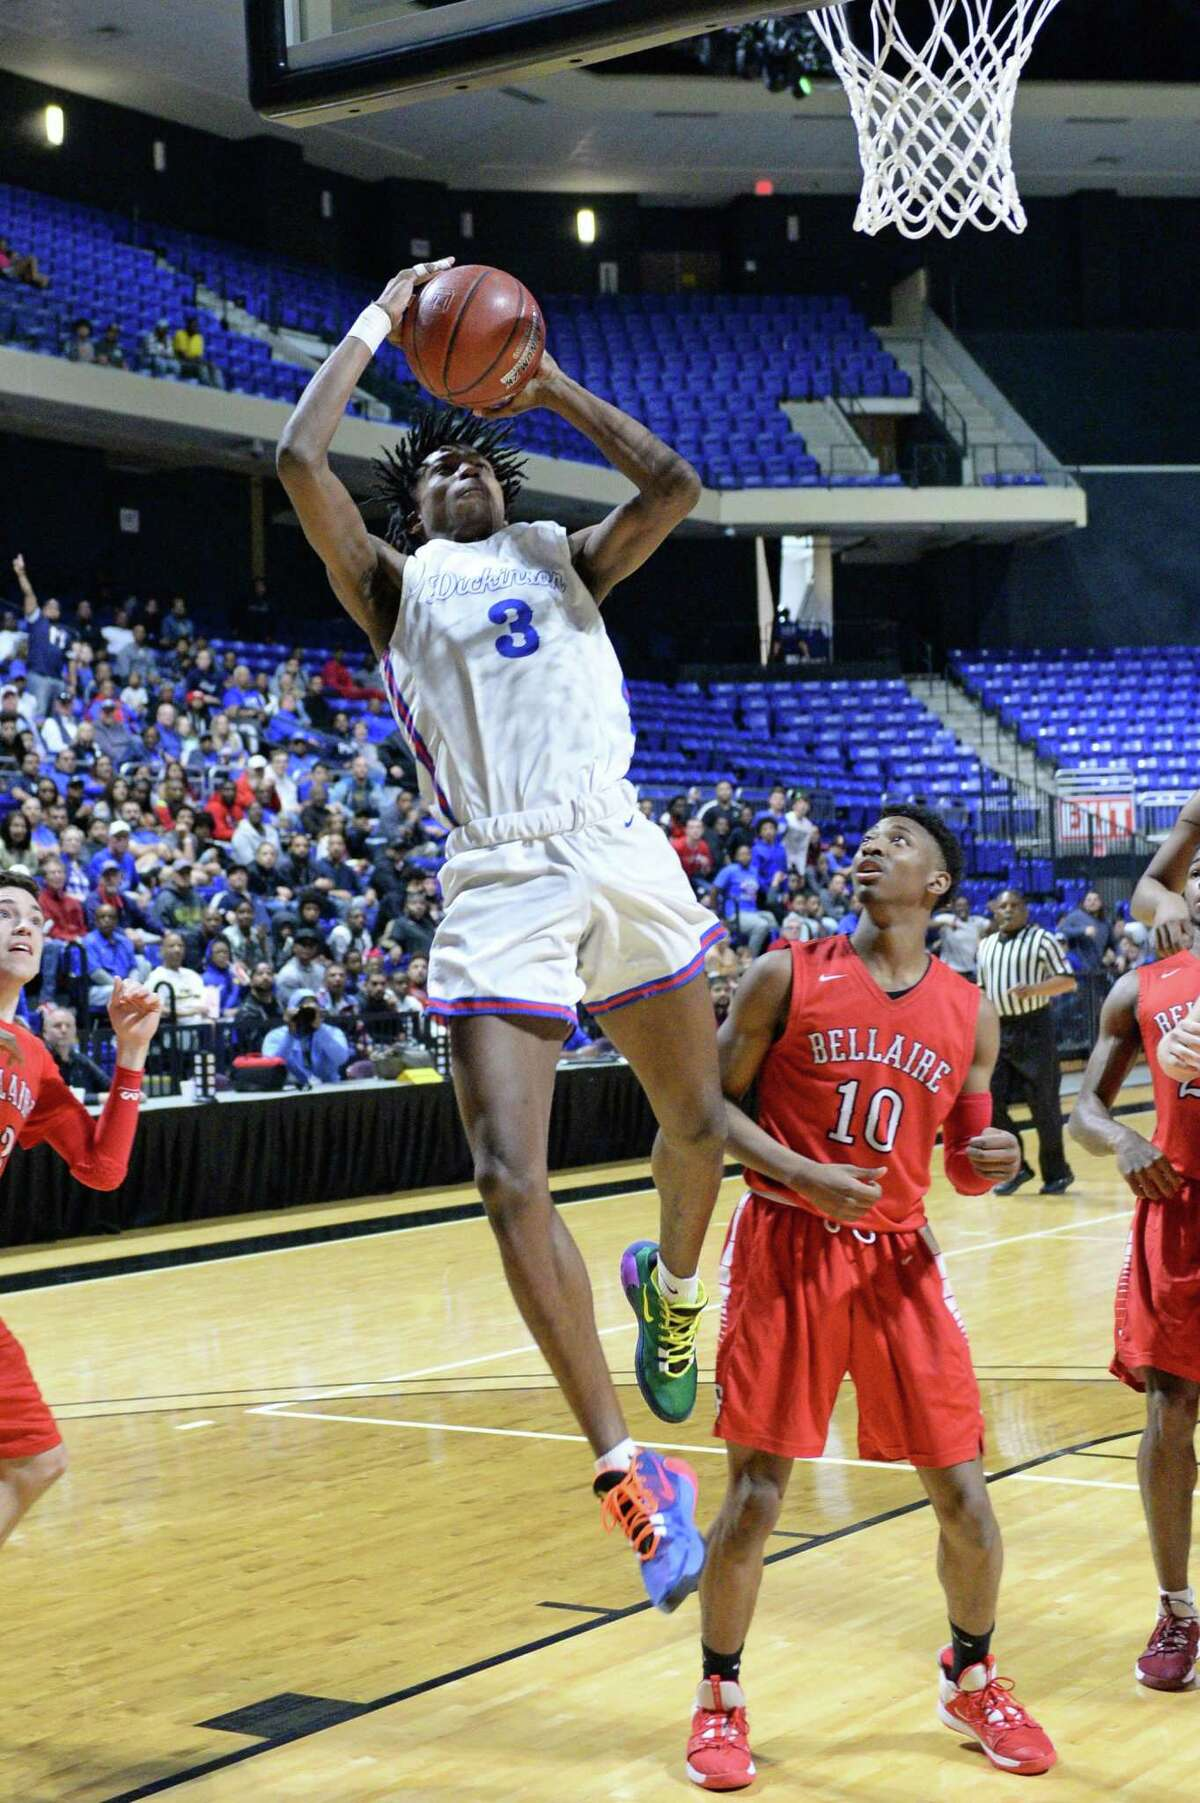 Tramon Mark (3) of Dickinson has been selected co-most valuable player of District 24-6A.